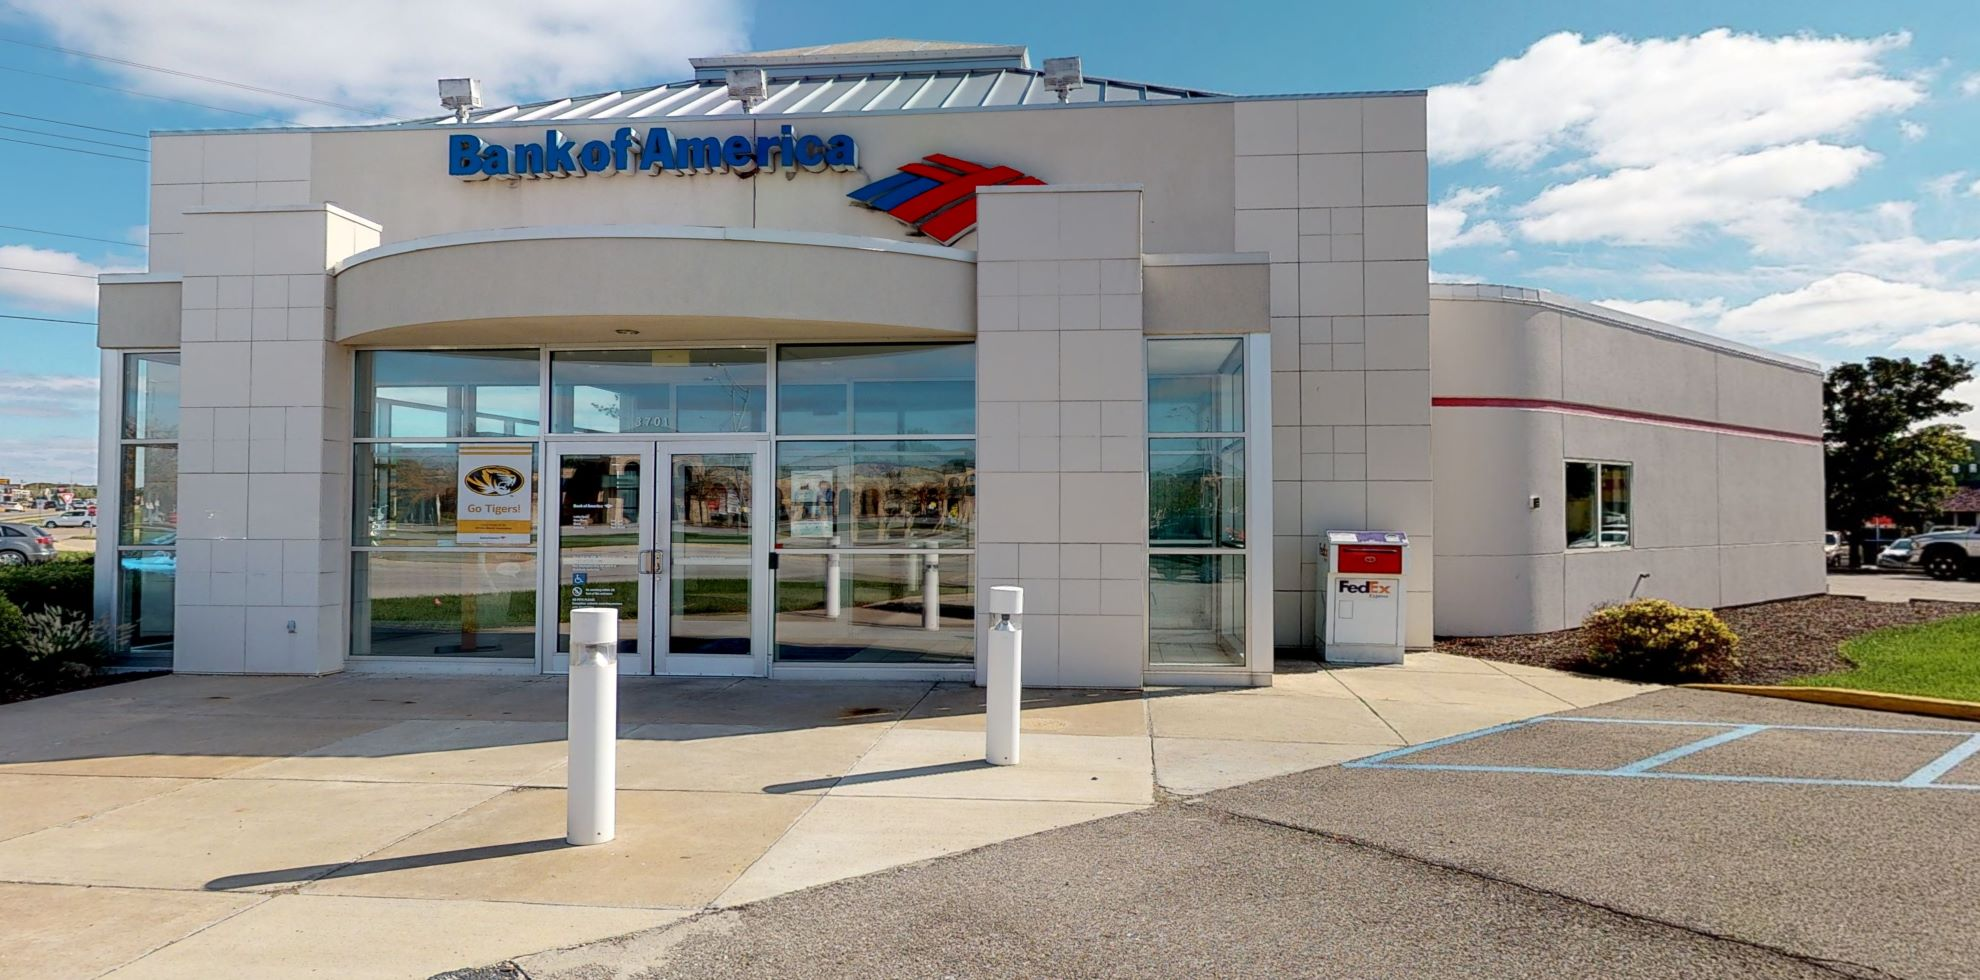 Bank of America financial center with drive-thru ATM   3701 S Providence Rd, Columbia, MO 65203